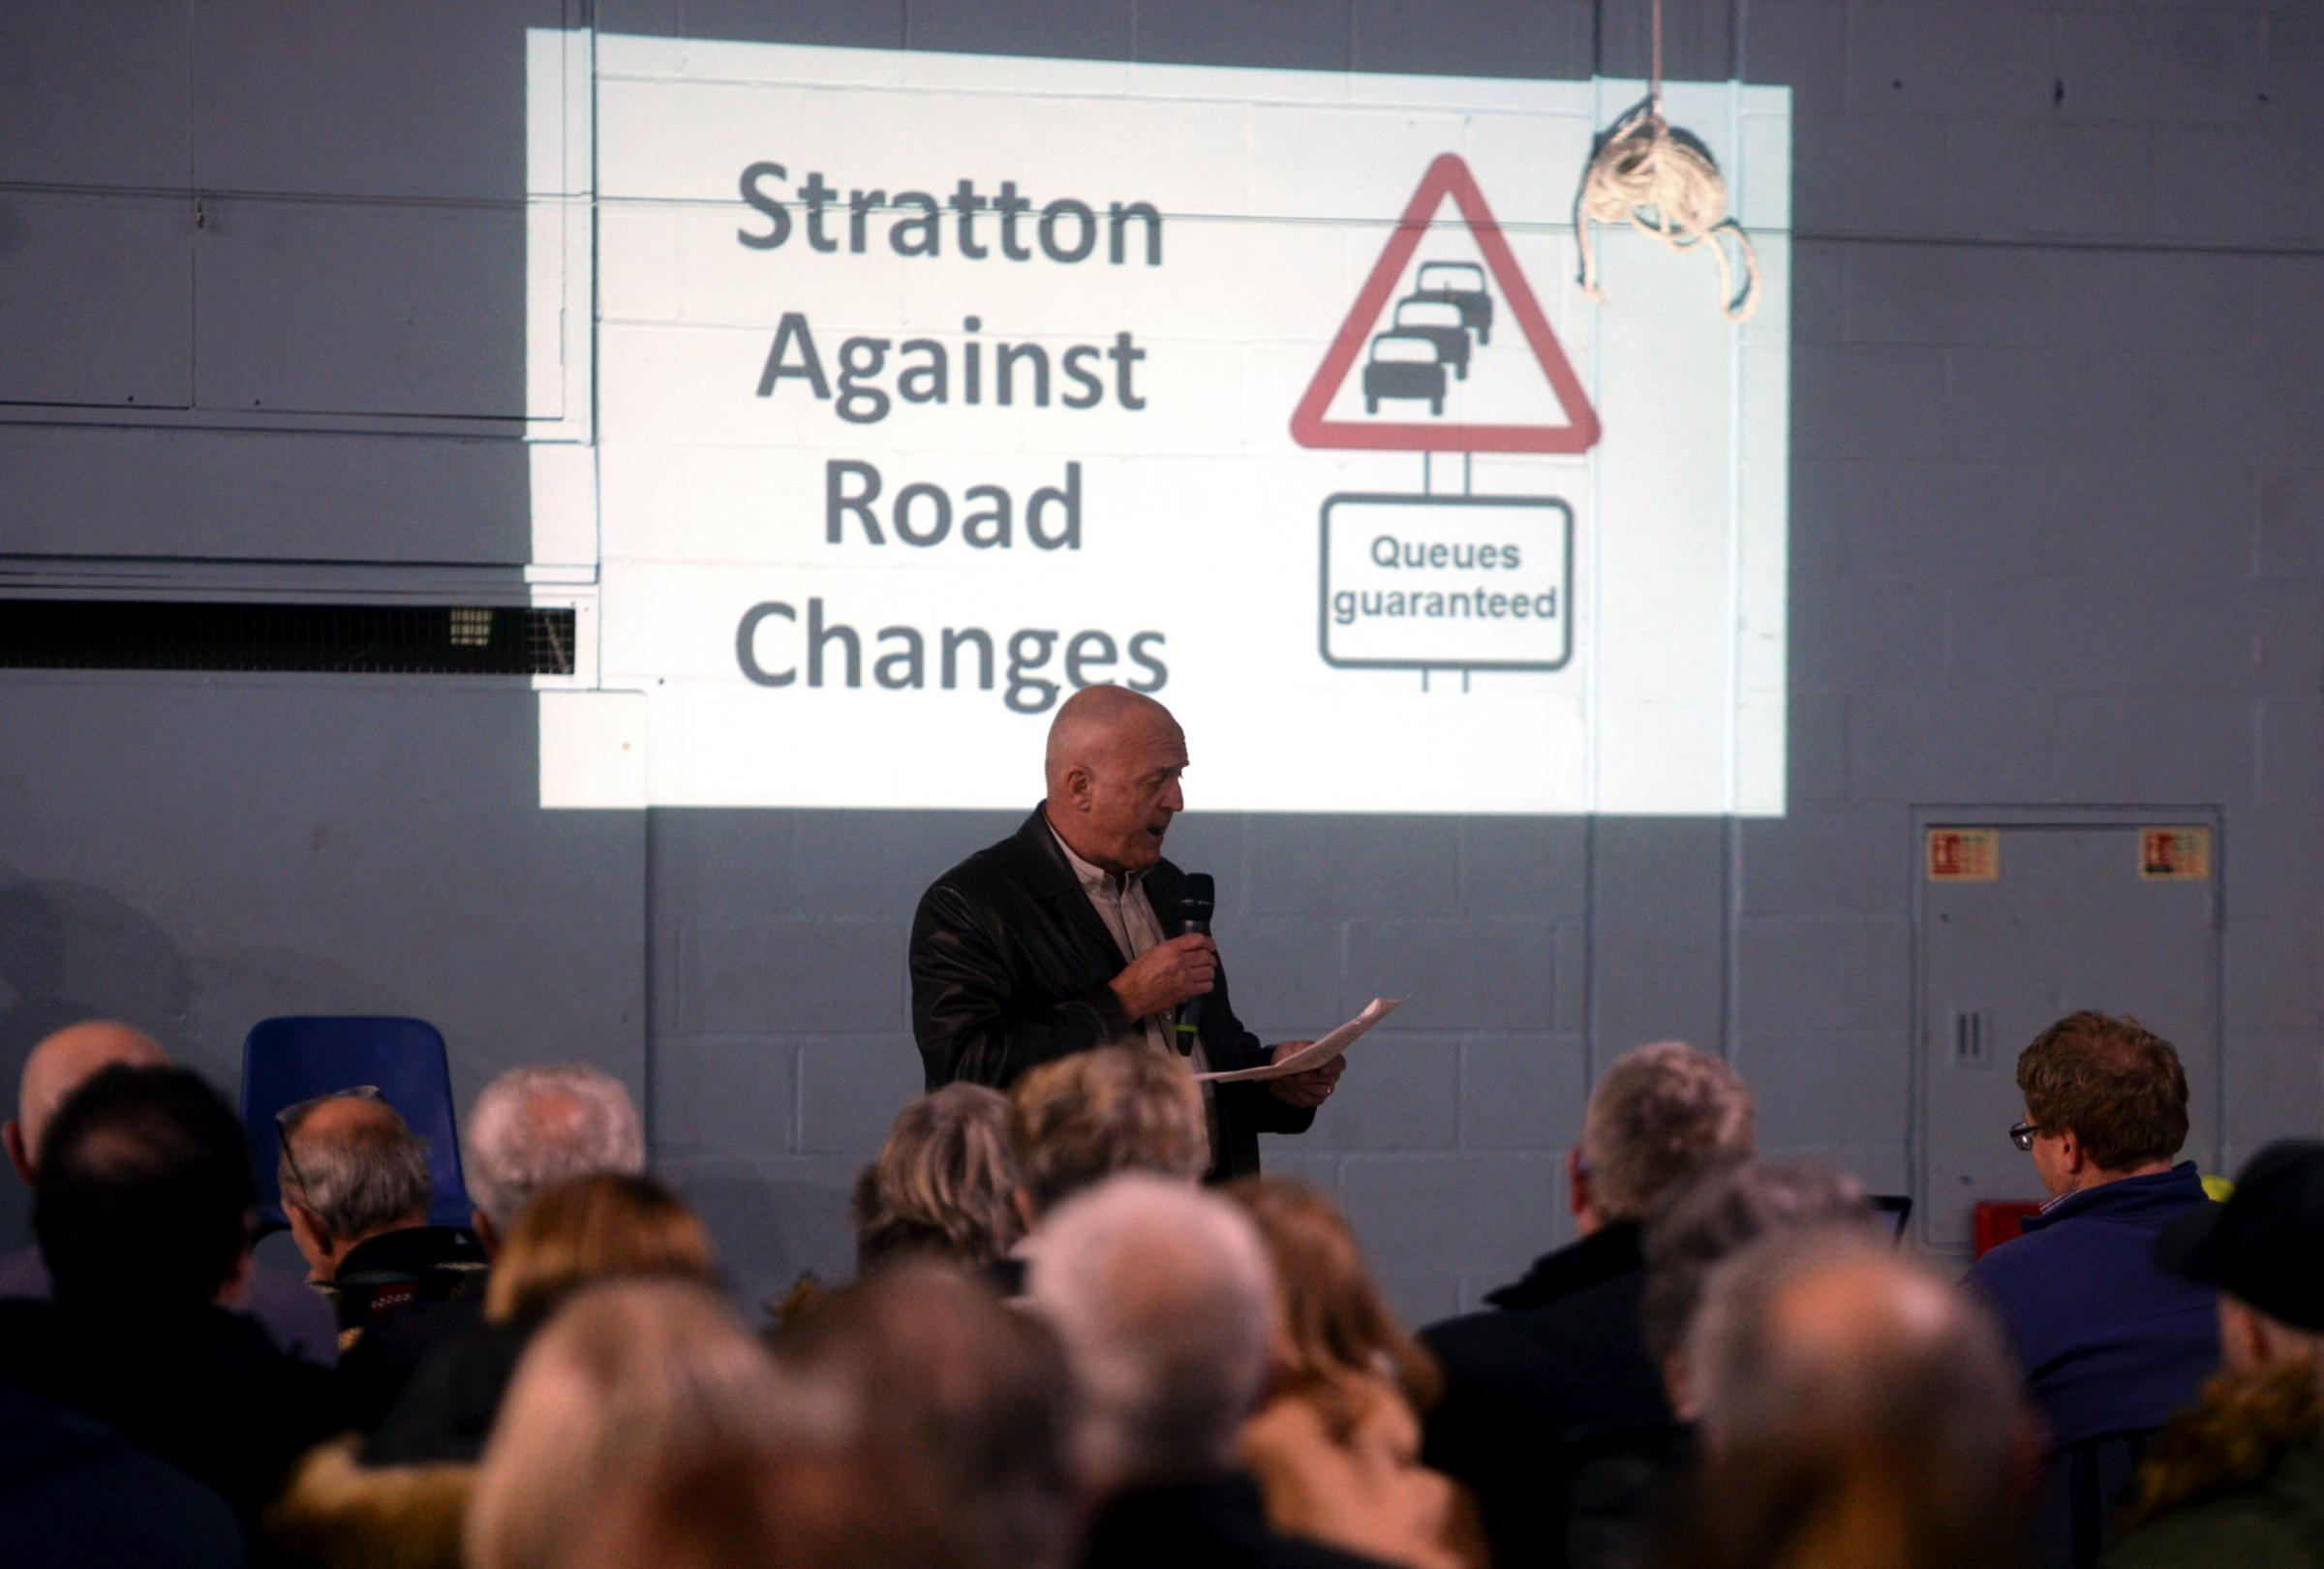 Stratton Against Road Changes Secretary Ron Fox addressing the packed audience at the SARC meeting held at Grange Leisure, Stratton, Swindon, Sunday 21st January.